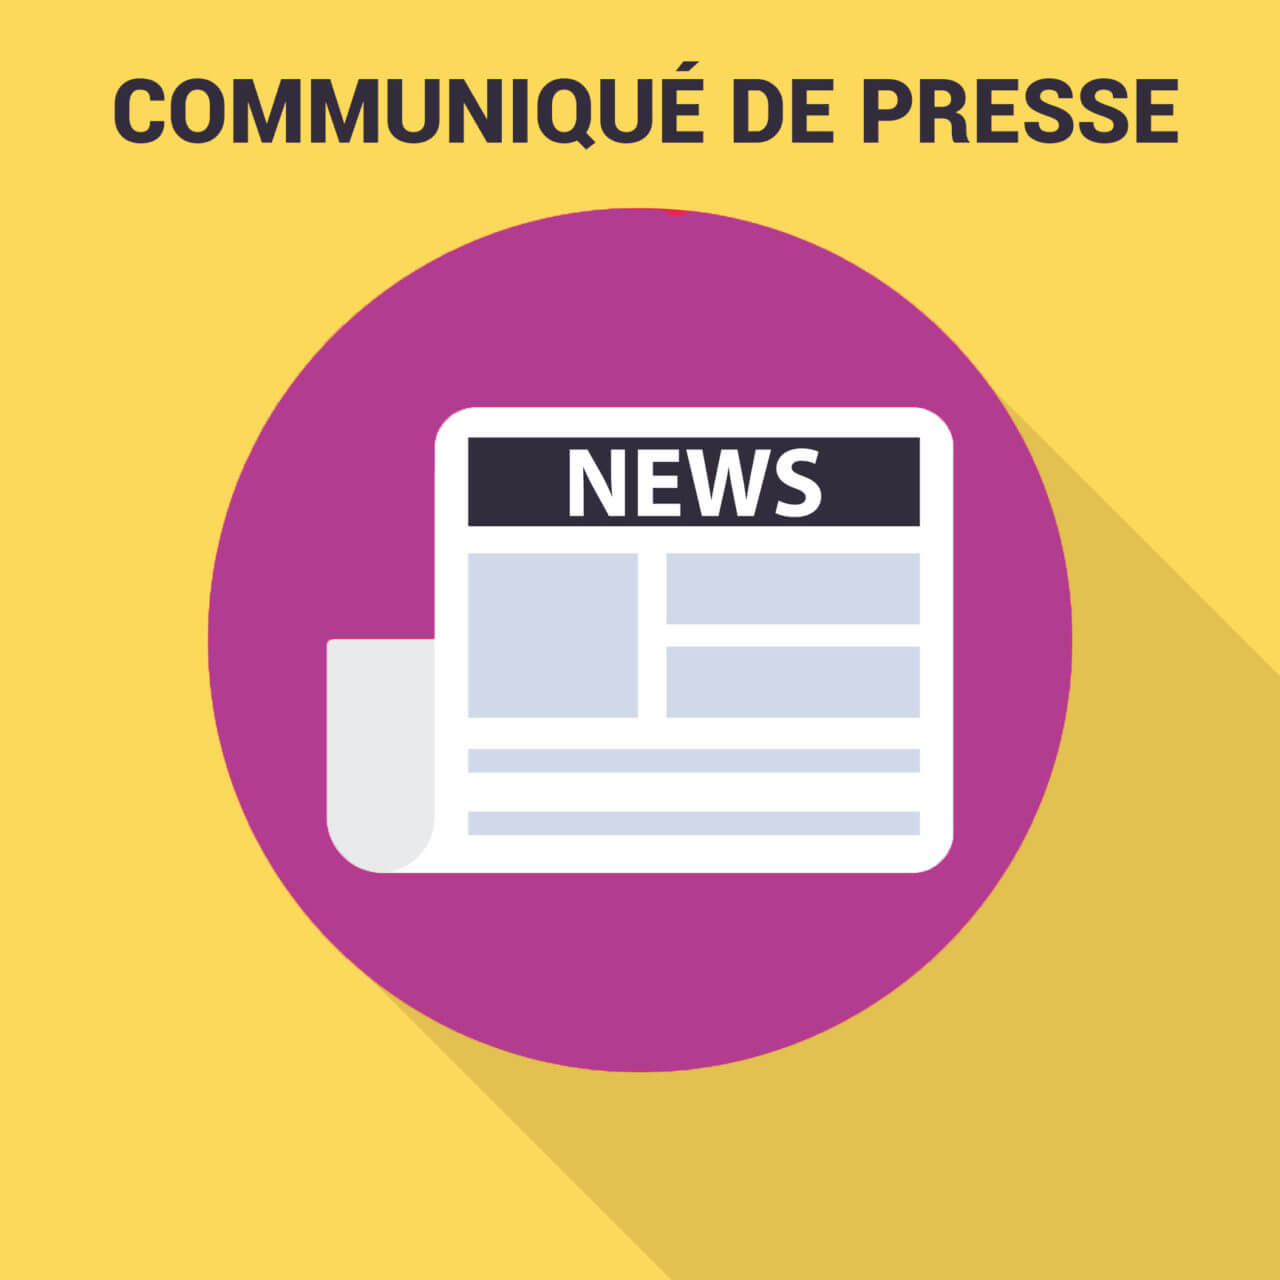 https://www.acxias.com/wp-content/uploads/2019/06/Illustration-communiqué-de-presse-1280x1280.jpg